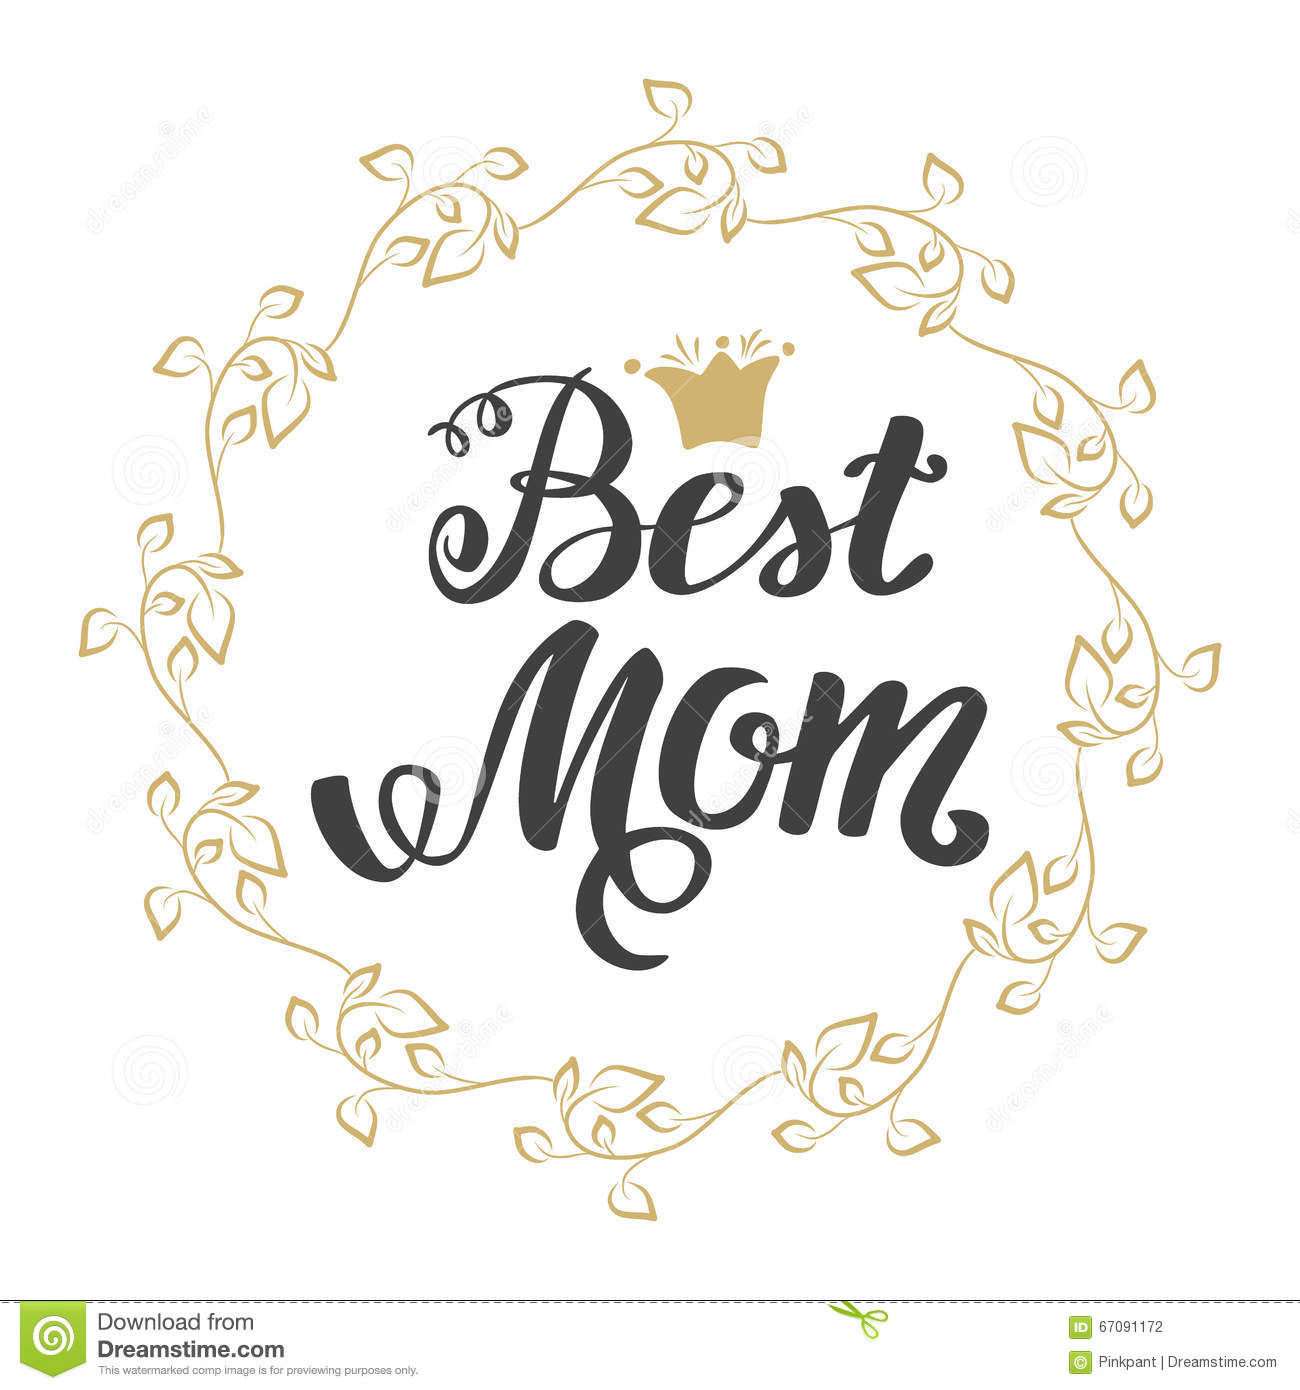 Best mom greeting card mothers day hand lettering greeting best mom greeting card mother s day hand lettering greeting inscription kristyandbryce Choice Image